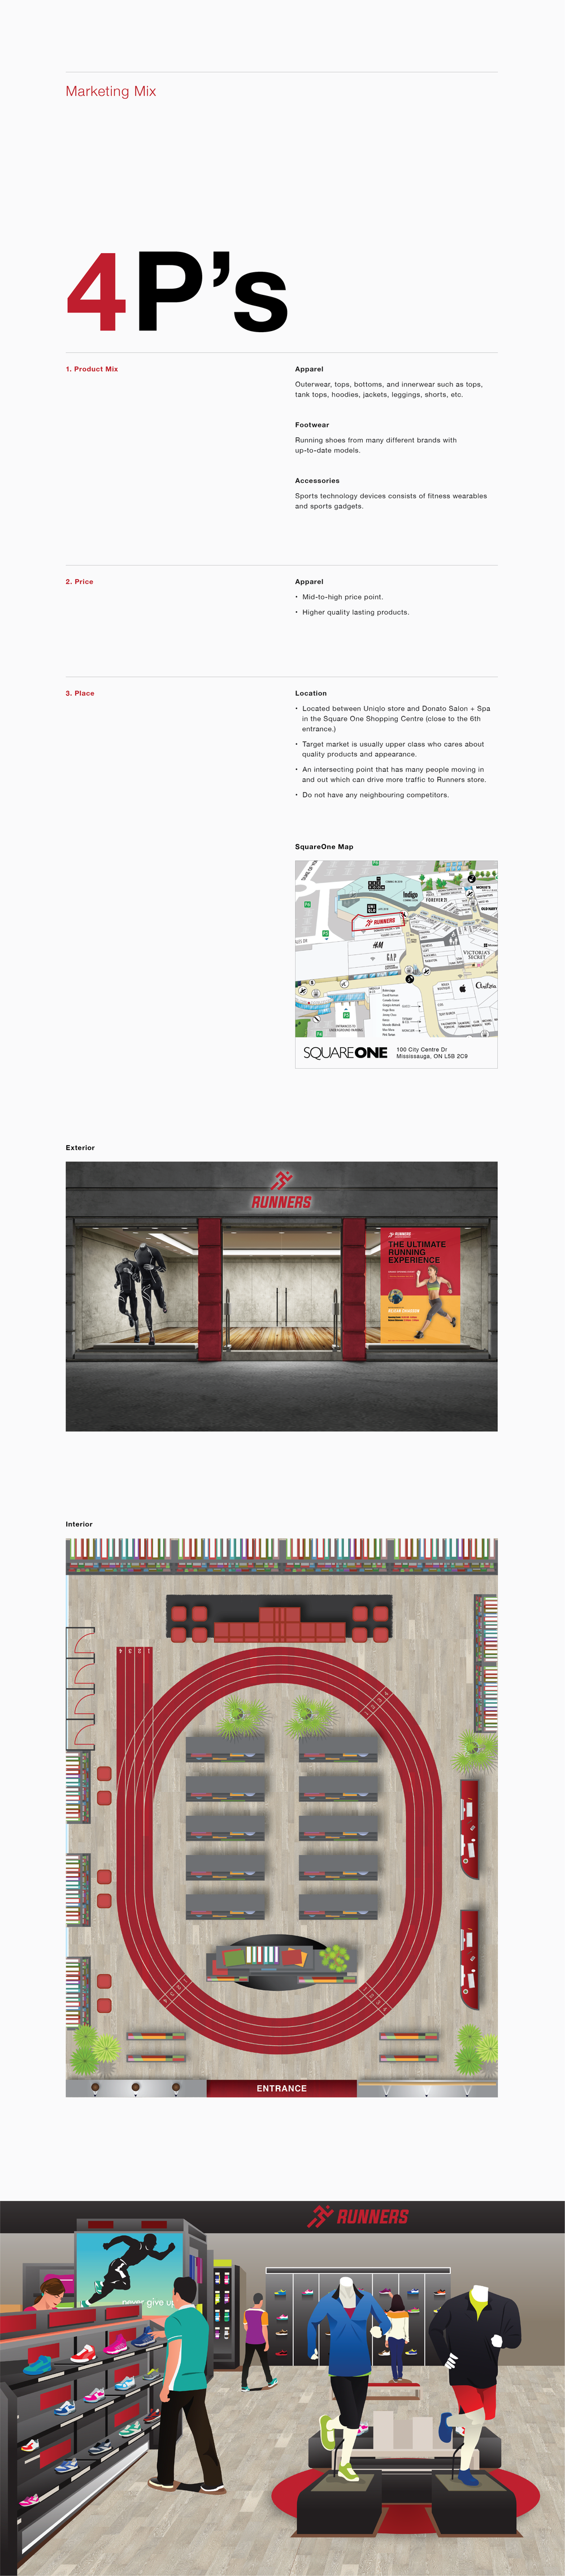 Retail Project-03.png